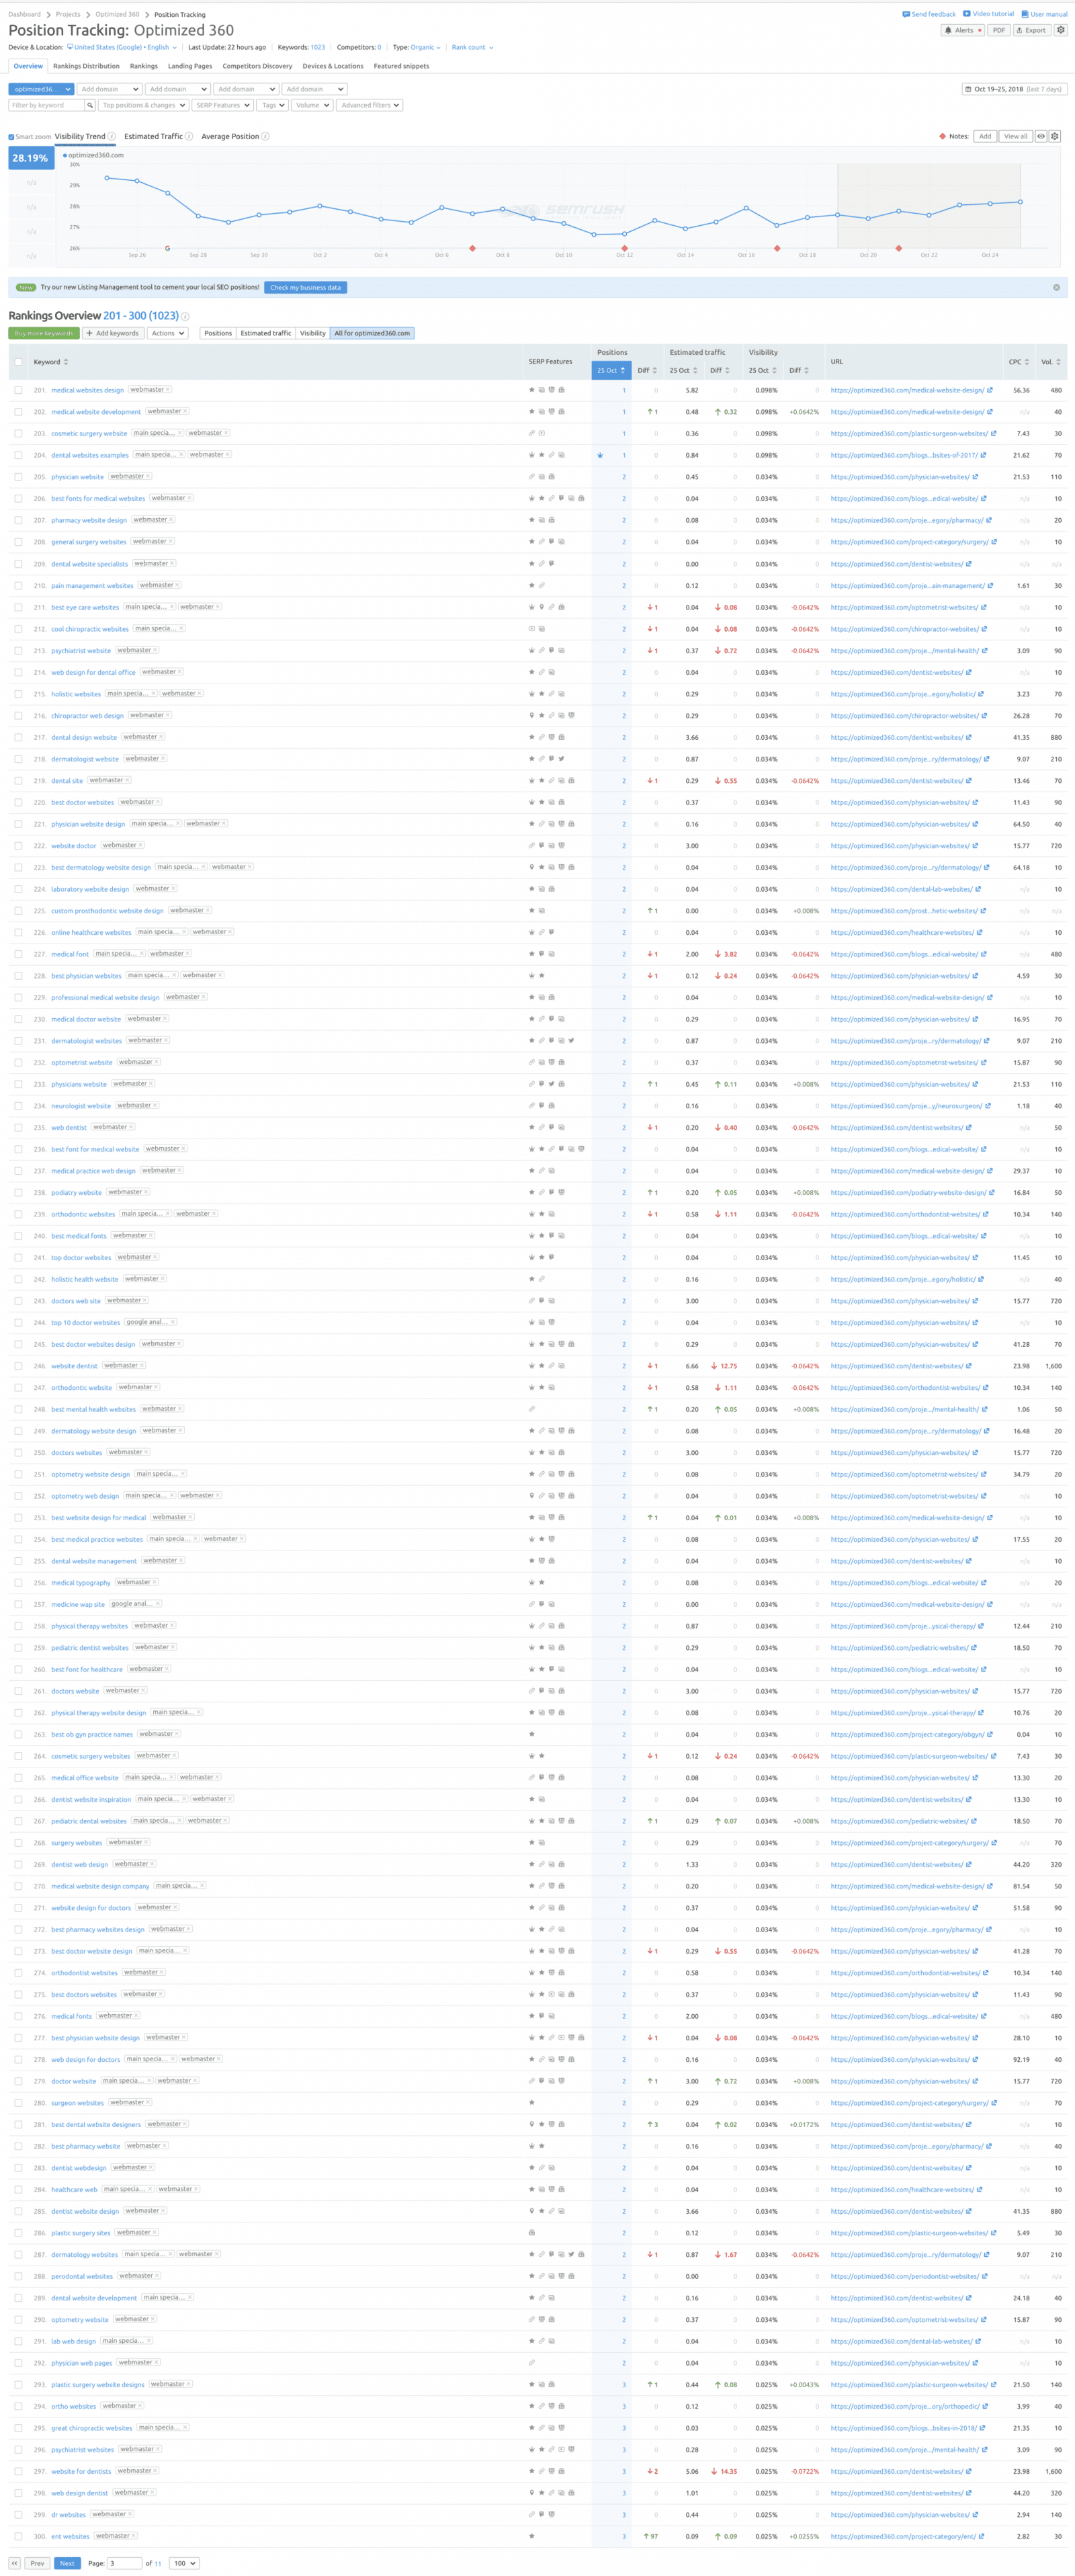 Optimized360 SEO ranking on Google page 1 showing 100 keywords that are ranked #1 - Page 3